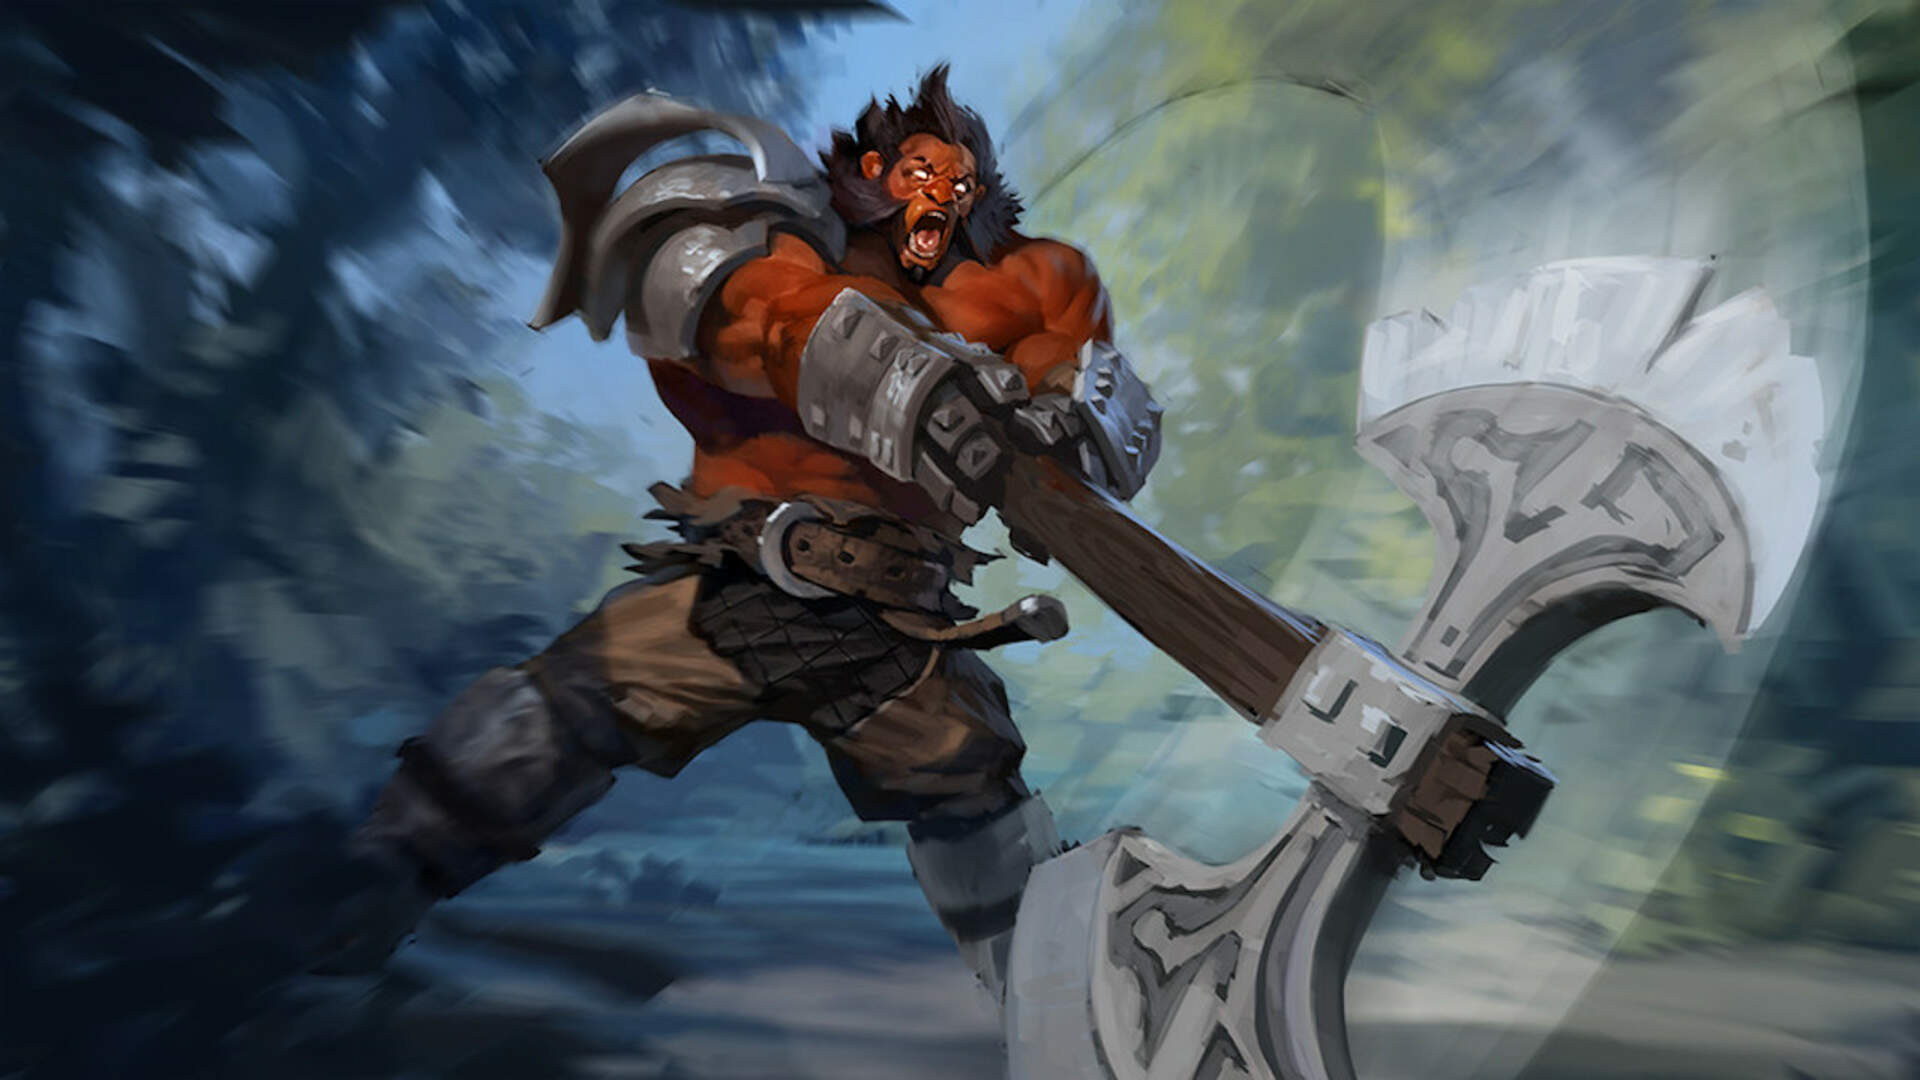 New Valve Doc Showcases Long-Lost Projects, Including a Dota 2 RPG